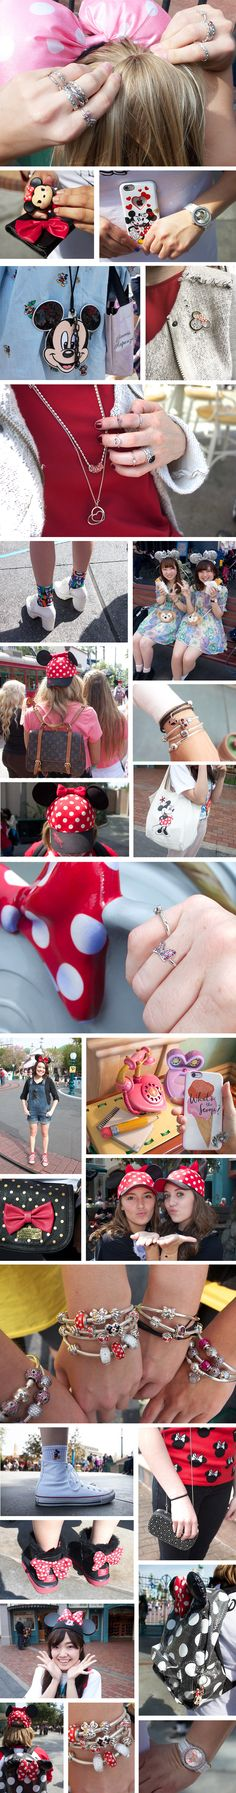 Minnie Mouse street style at Disneyland. | Fashion inspired by bows + polka dots + Pandora Minnie Mouse Collection. | [ https://style.disney.com/fashion/2016/03/30/minnie-mouse-street-style-disneyland/ ]